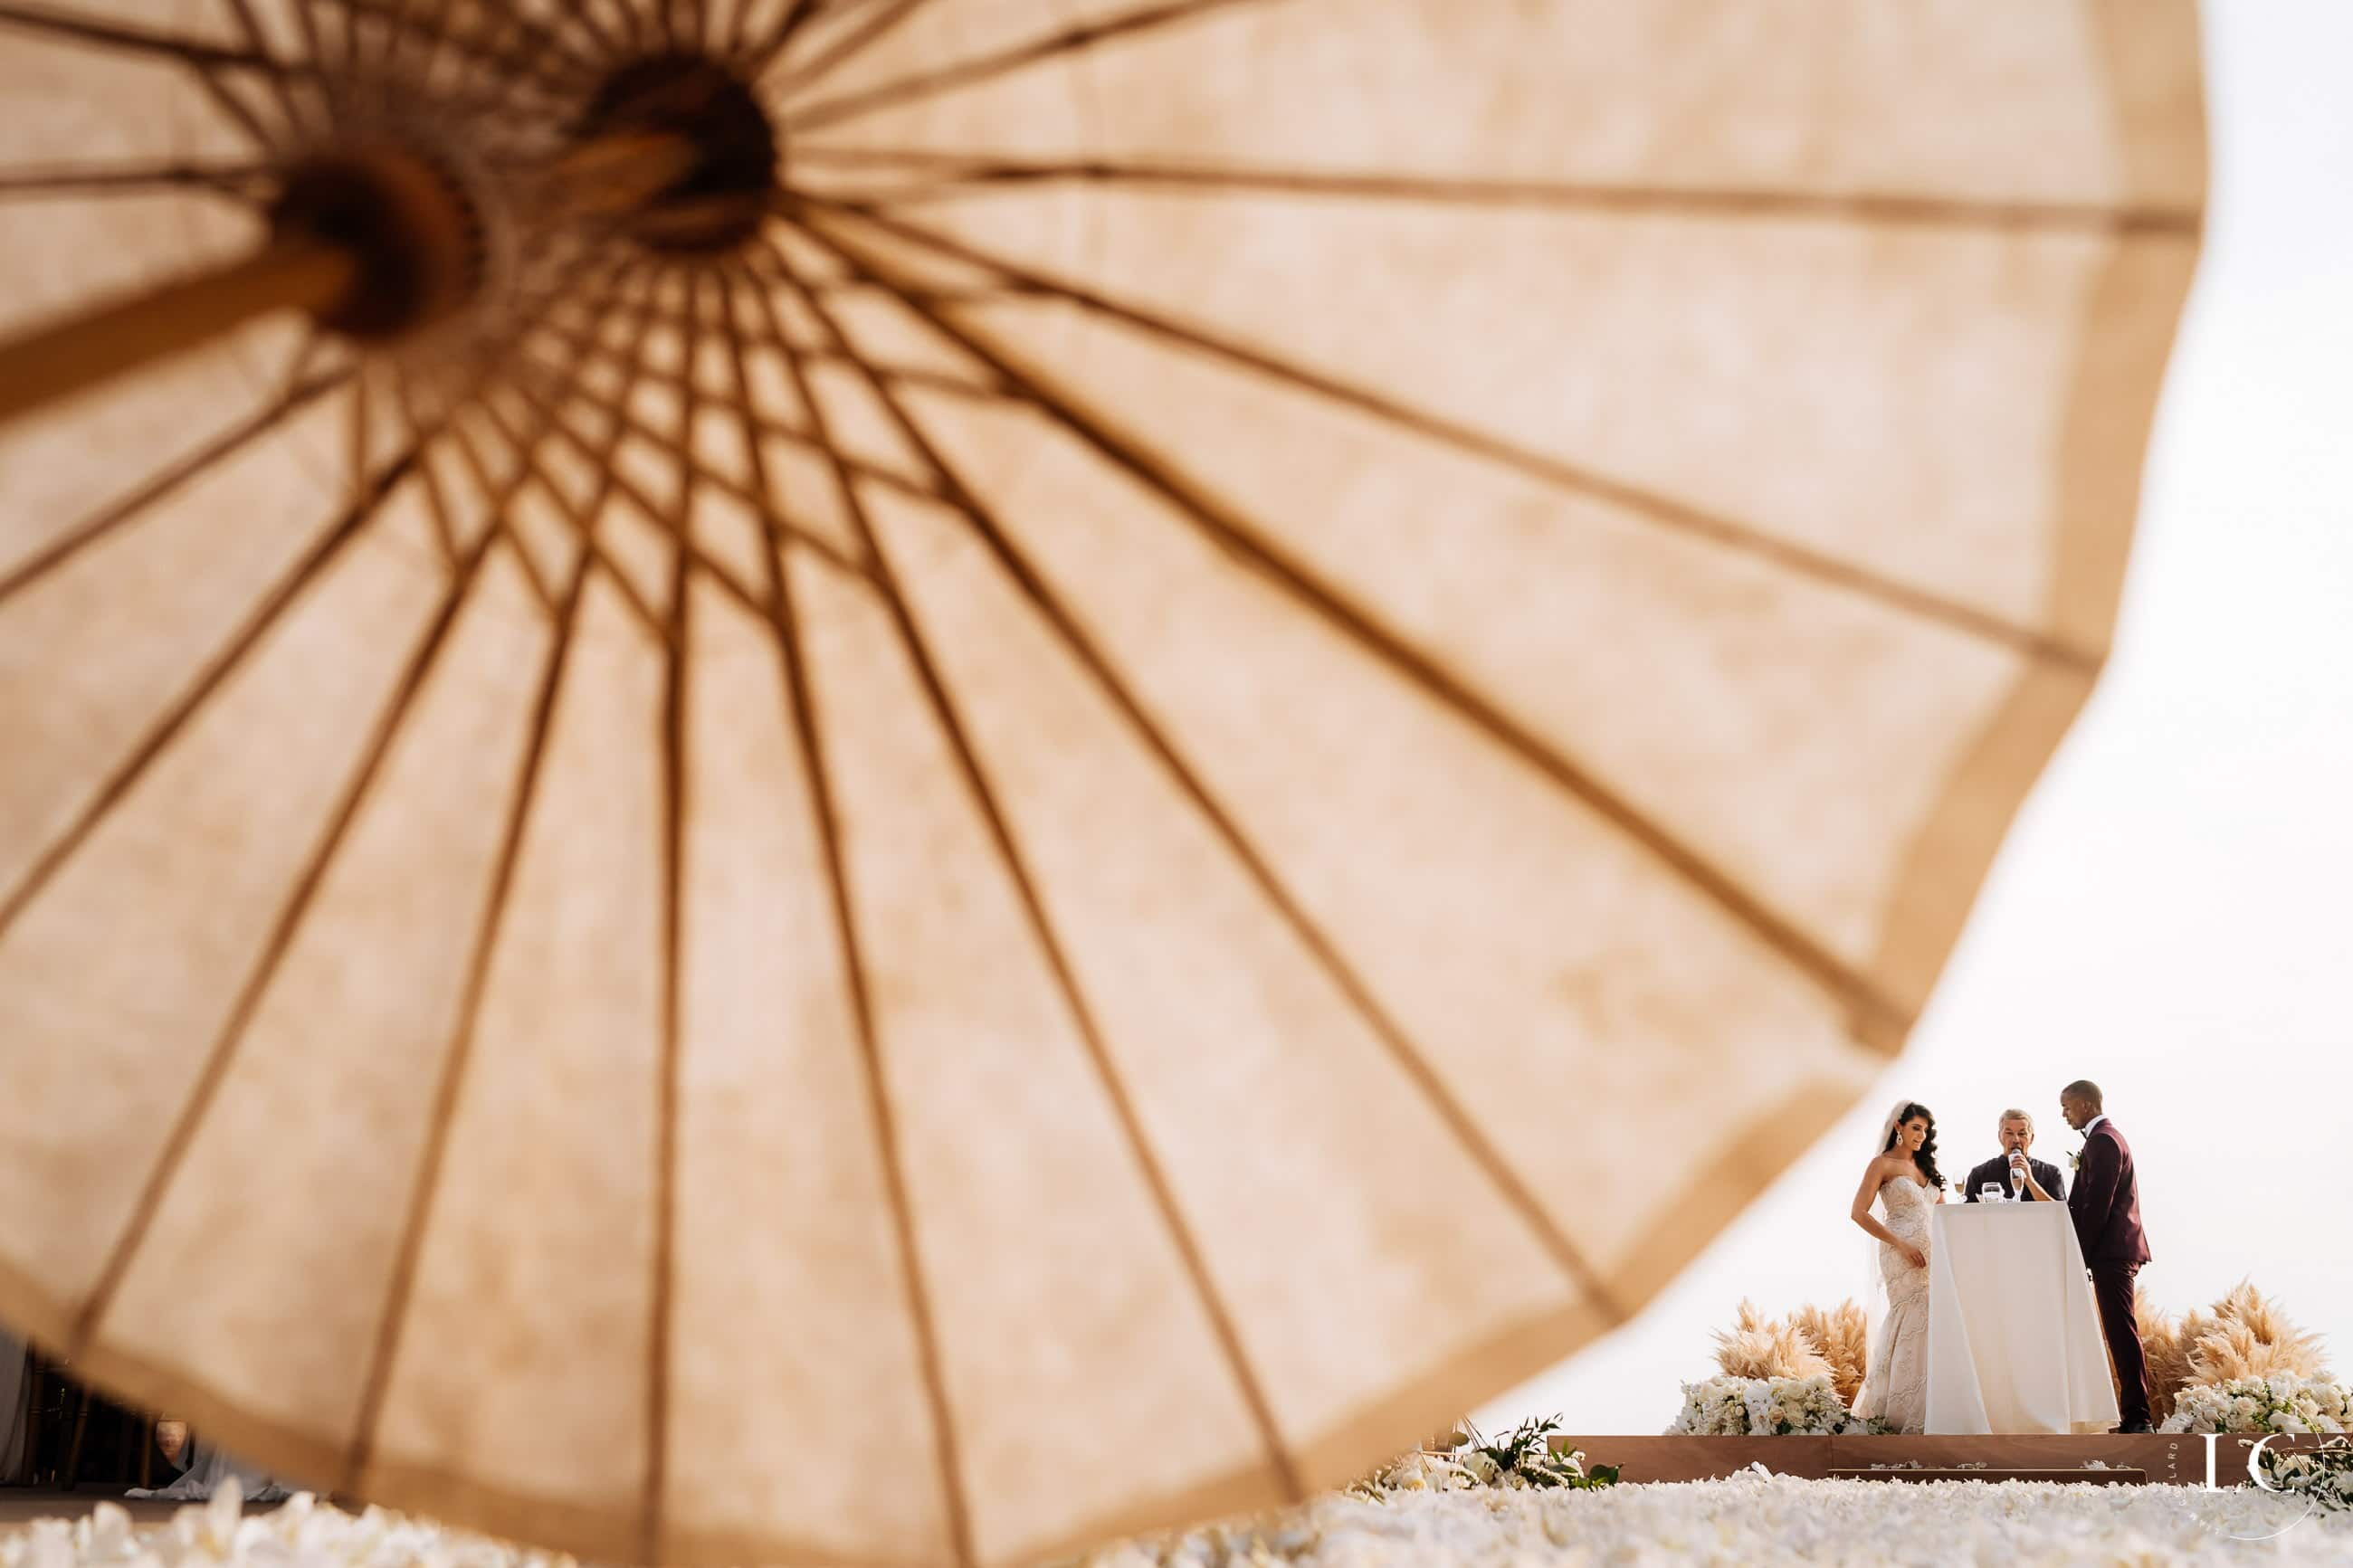 Far angle shot with umbrella in the forefront of bride and groom